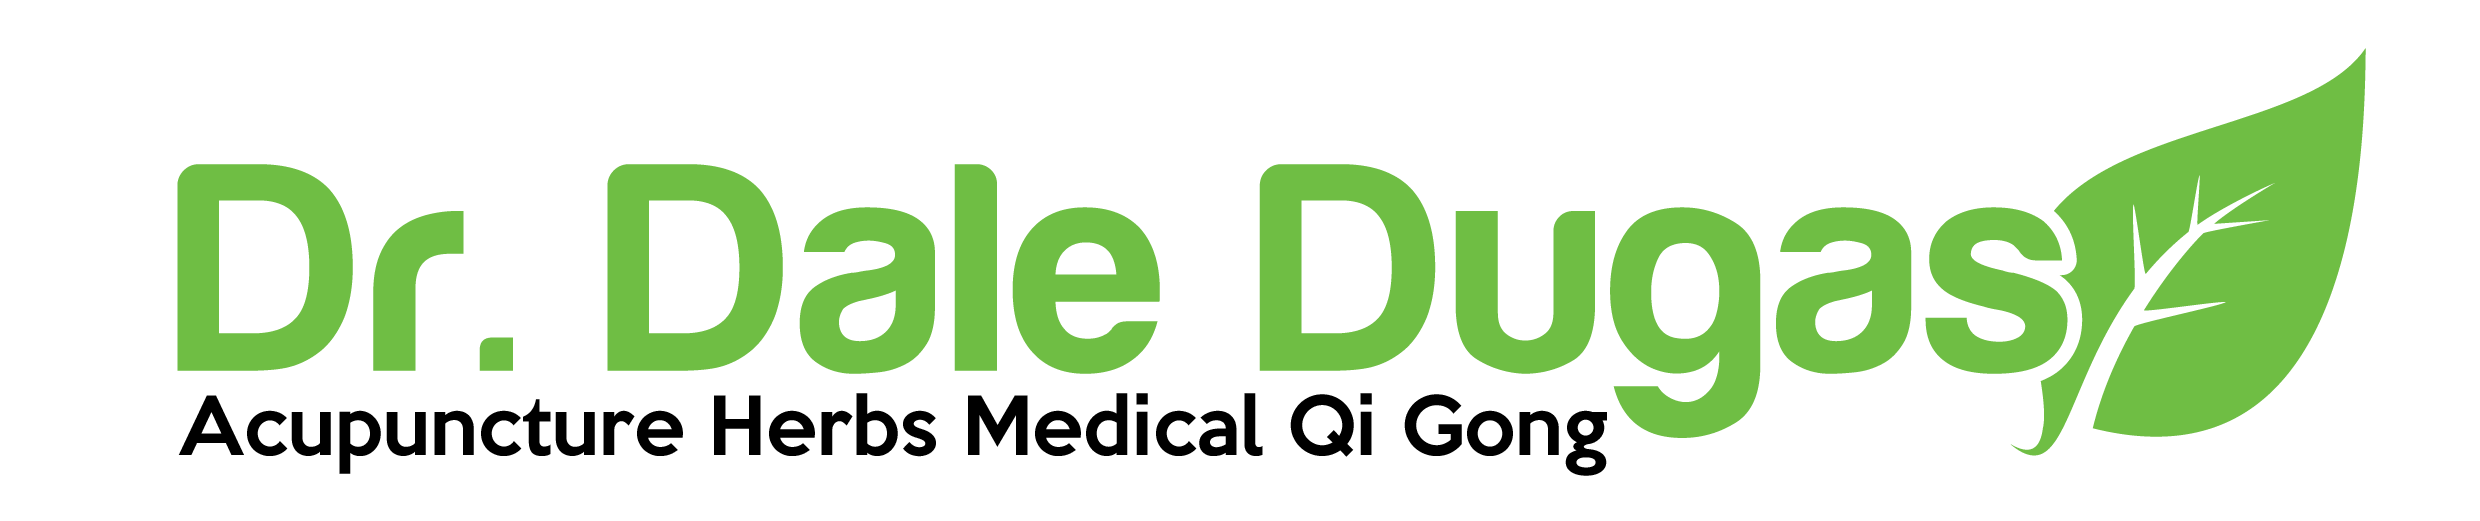 Dr. Dale Dugas Acupuncture and Chinese Medicine